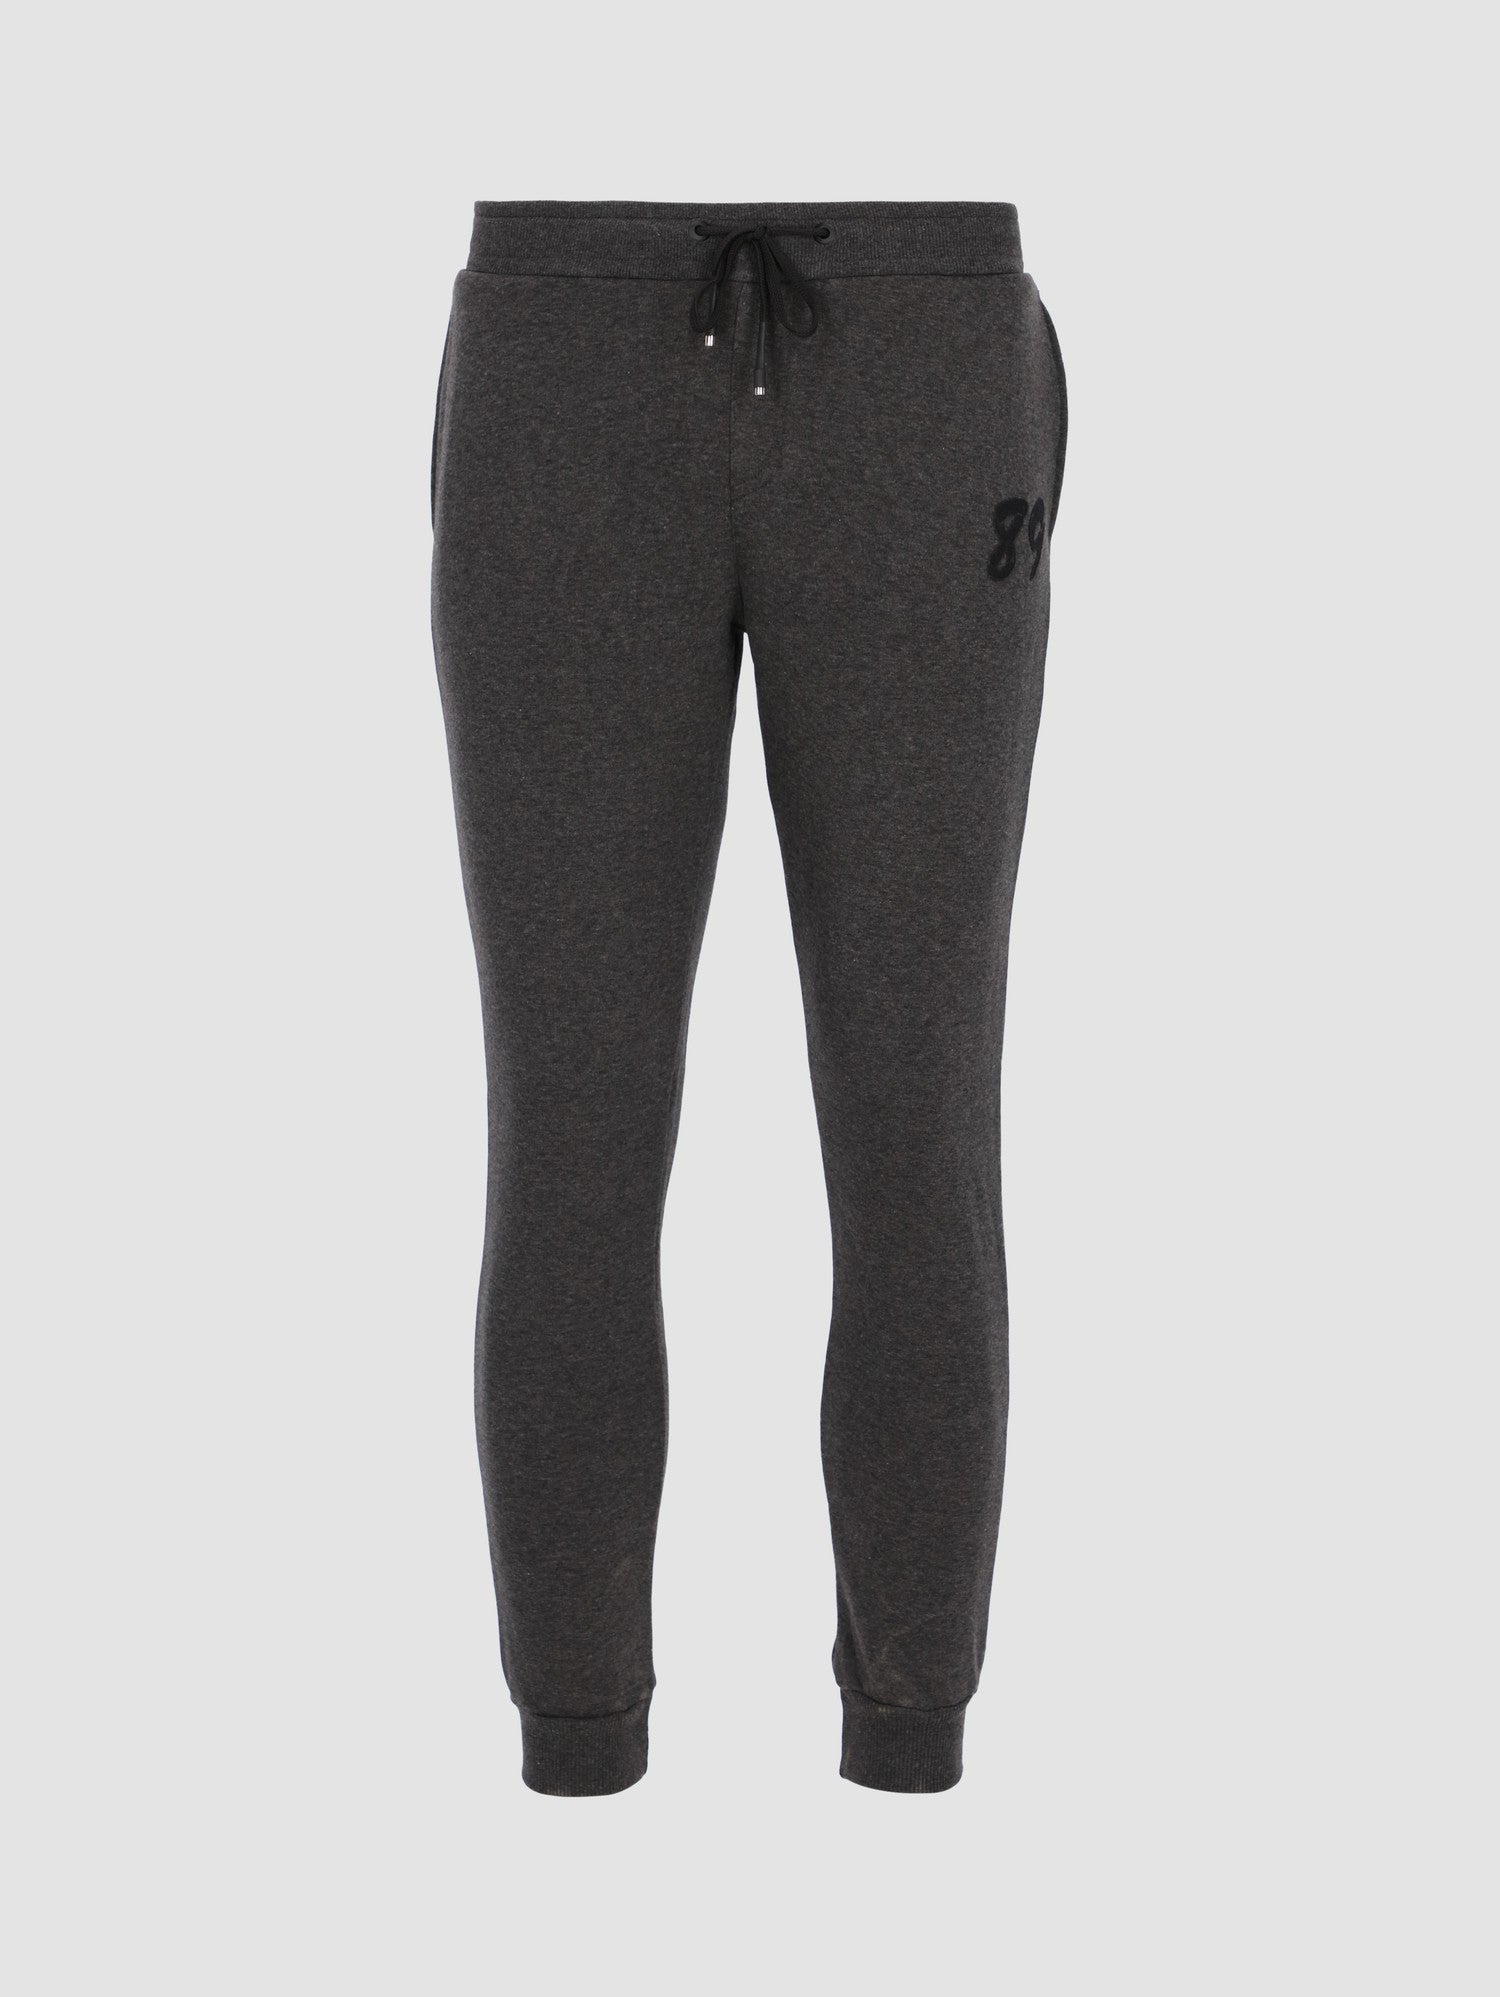 Men's Basic Sweatpants with Printed Patch 89